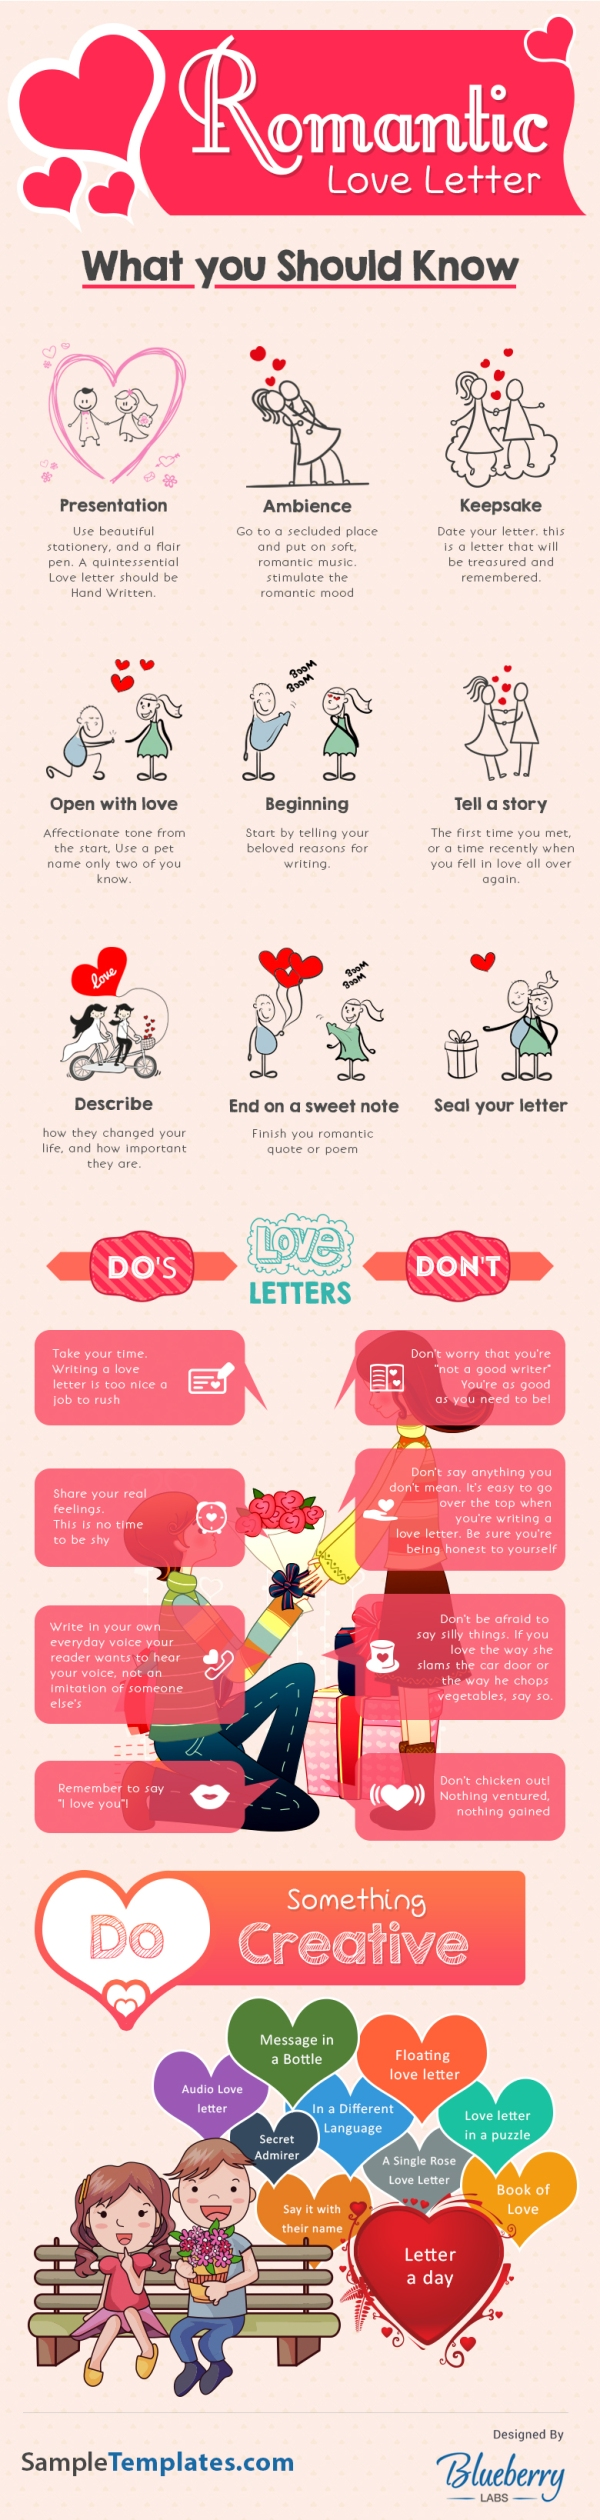 NRF-Romantic-Love-Letter